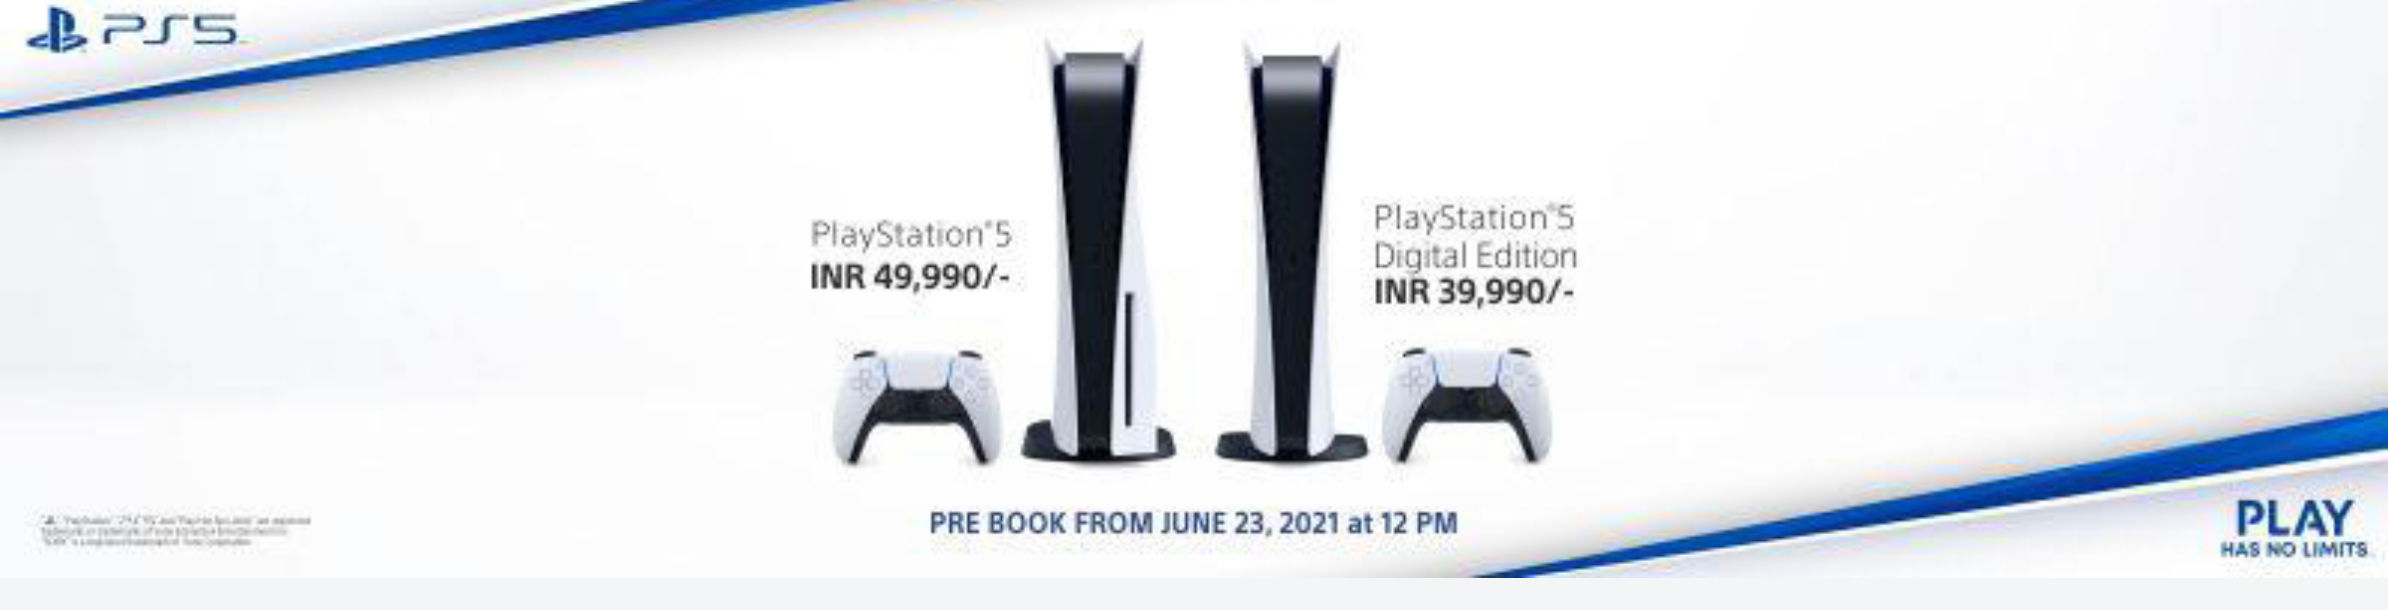 PS5 pre-booking in India starts June 23rd at 12pm